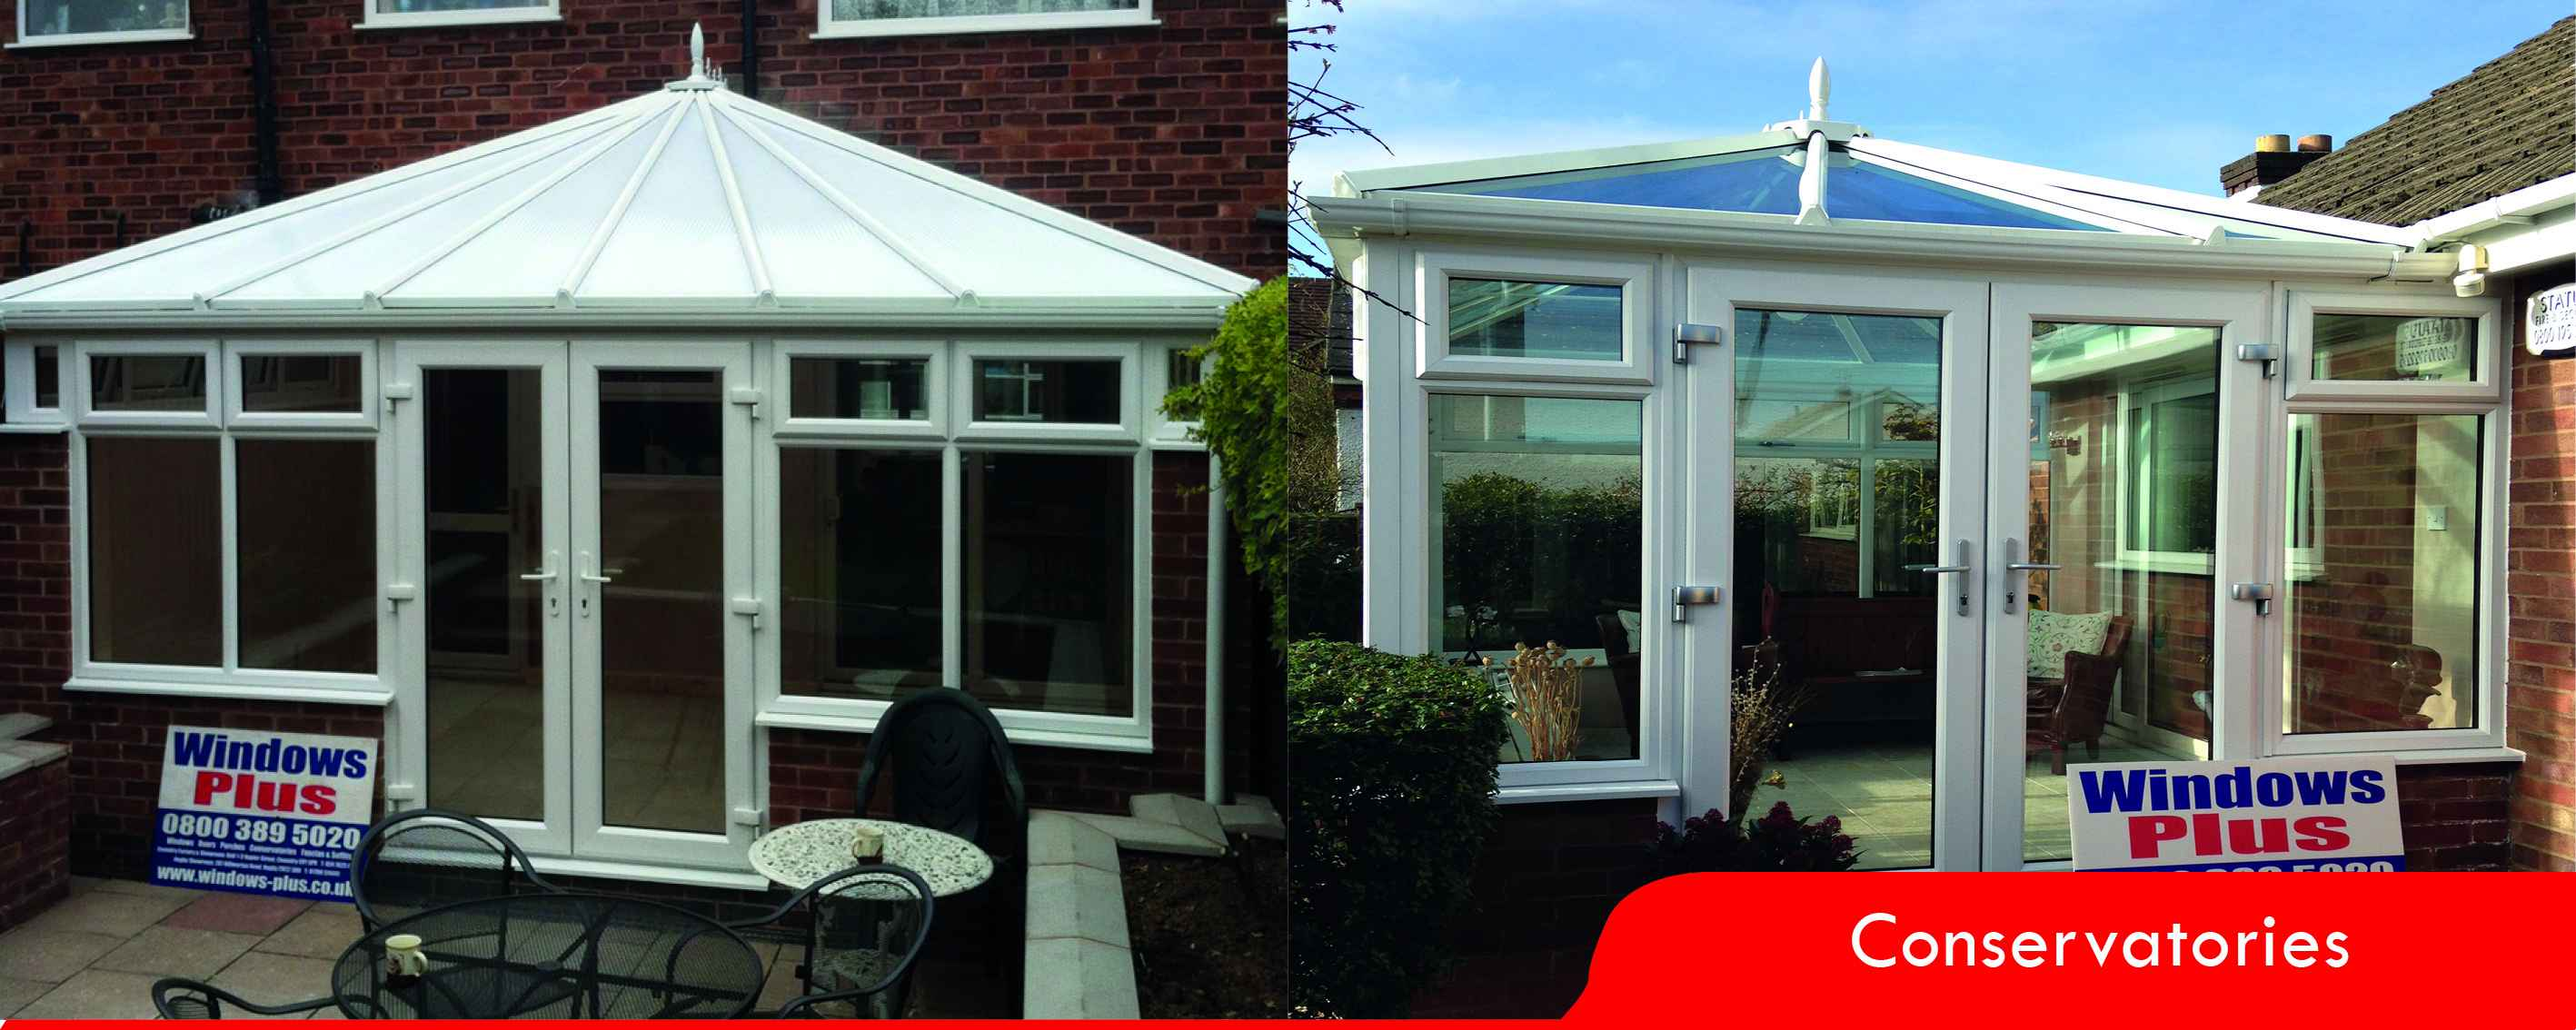 Conservatories Coventry Windows Plus New Conservatory Builders